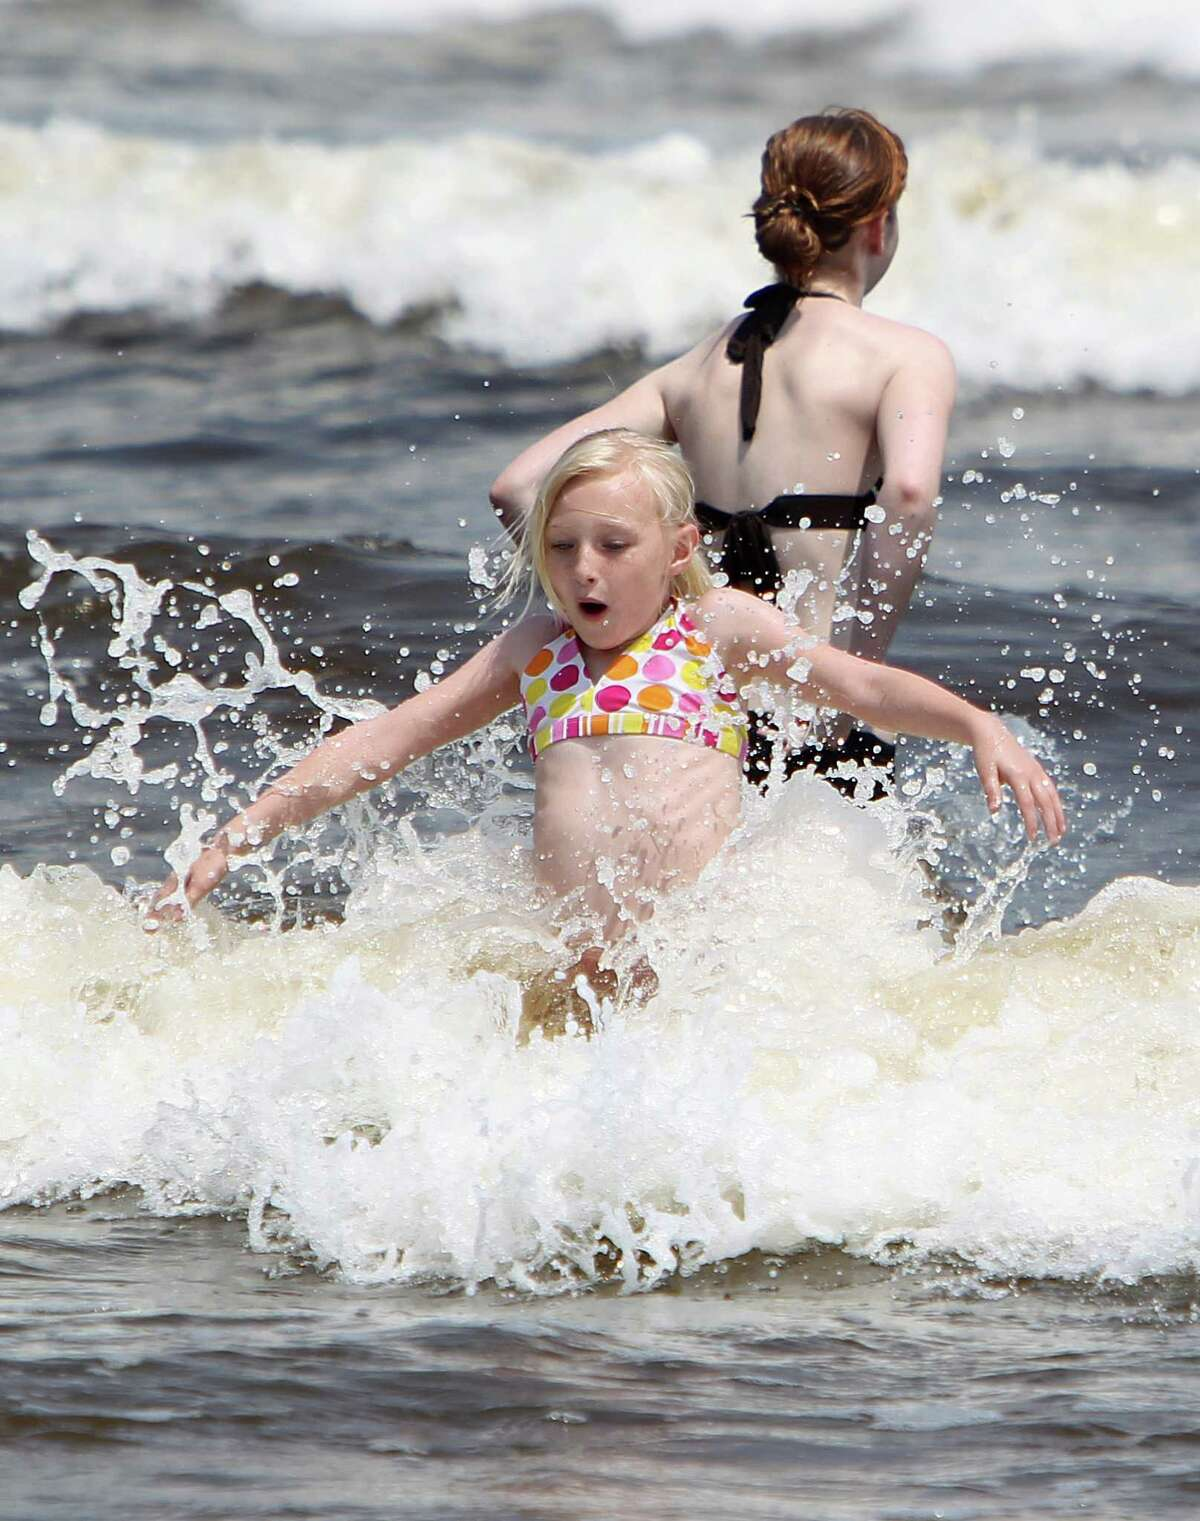 Betty Gallien, 8, of Huntsville, jumps into a wave as she joins her family on an early Memorial Day outing on Thursday, May 23, 2013, in Galveston. This Memorial Day weekend nearly 3 million Texans are expected to hit the roadways and pack airports according to AAA. ( Mayra Beltran / Houston Chronicle )